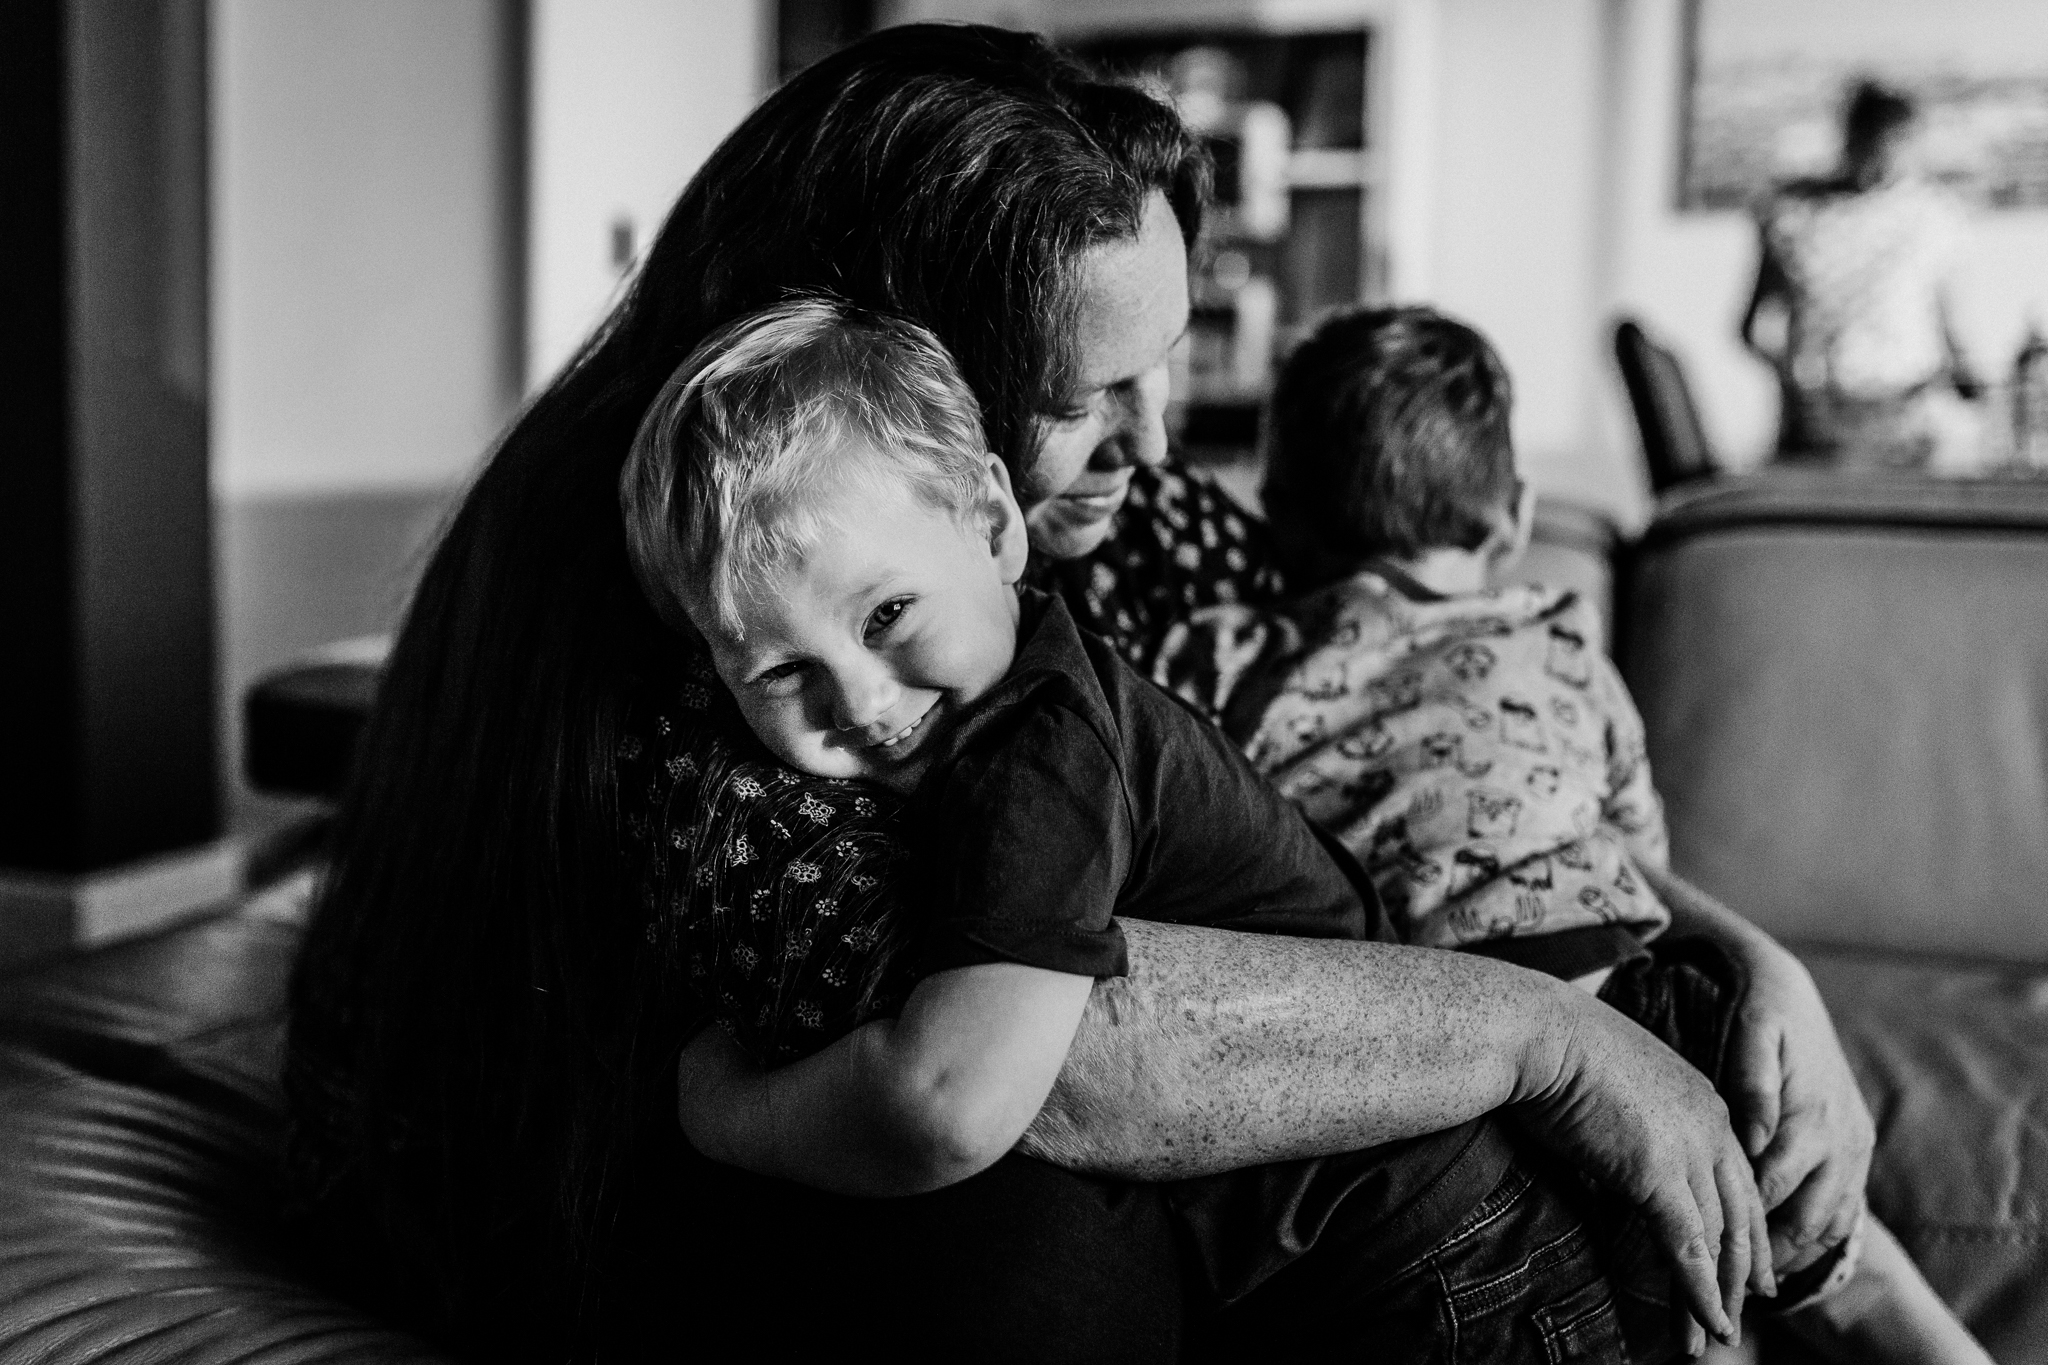 Sydney family photographer Kylie Purtell